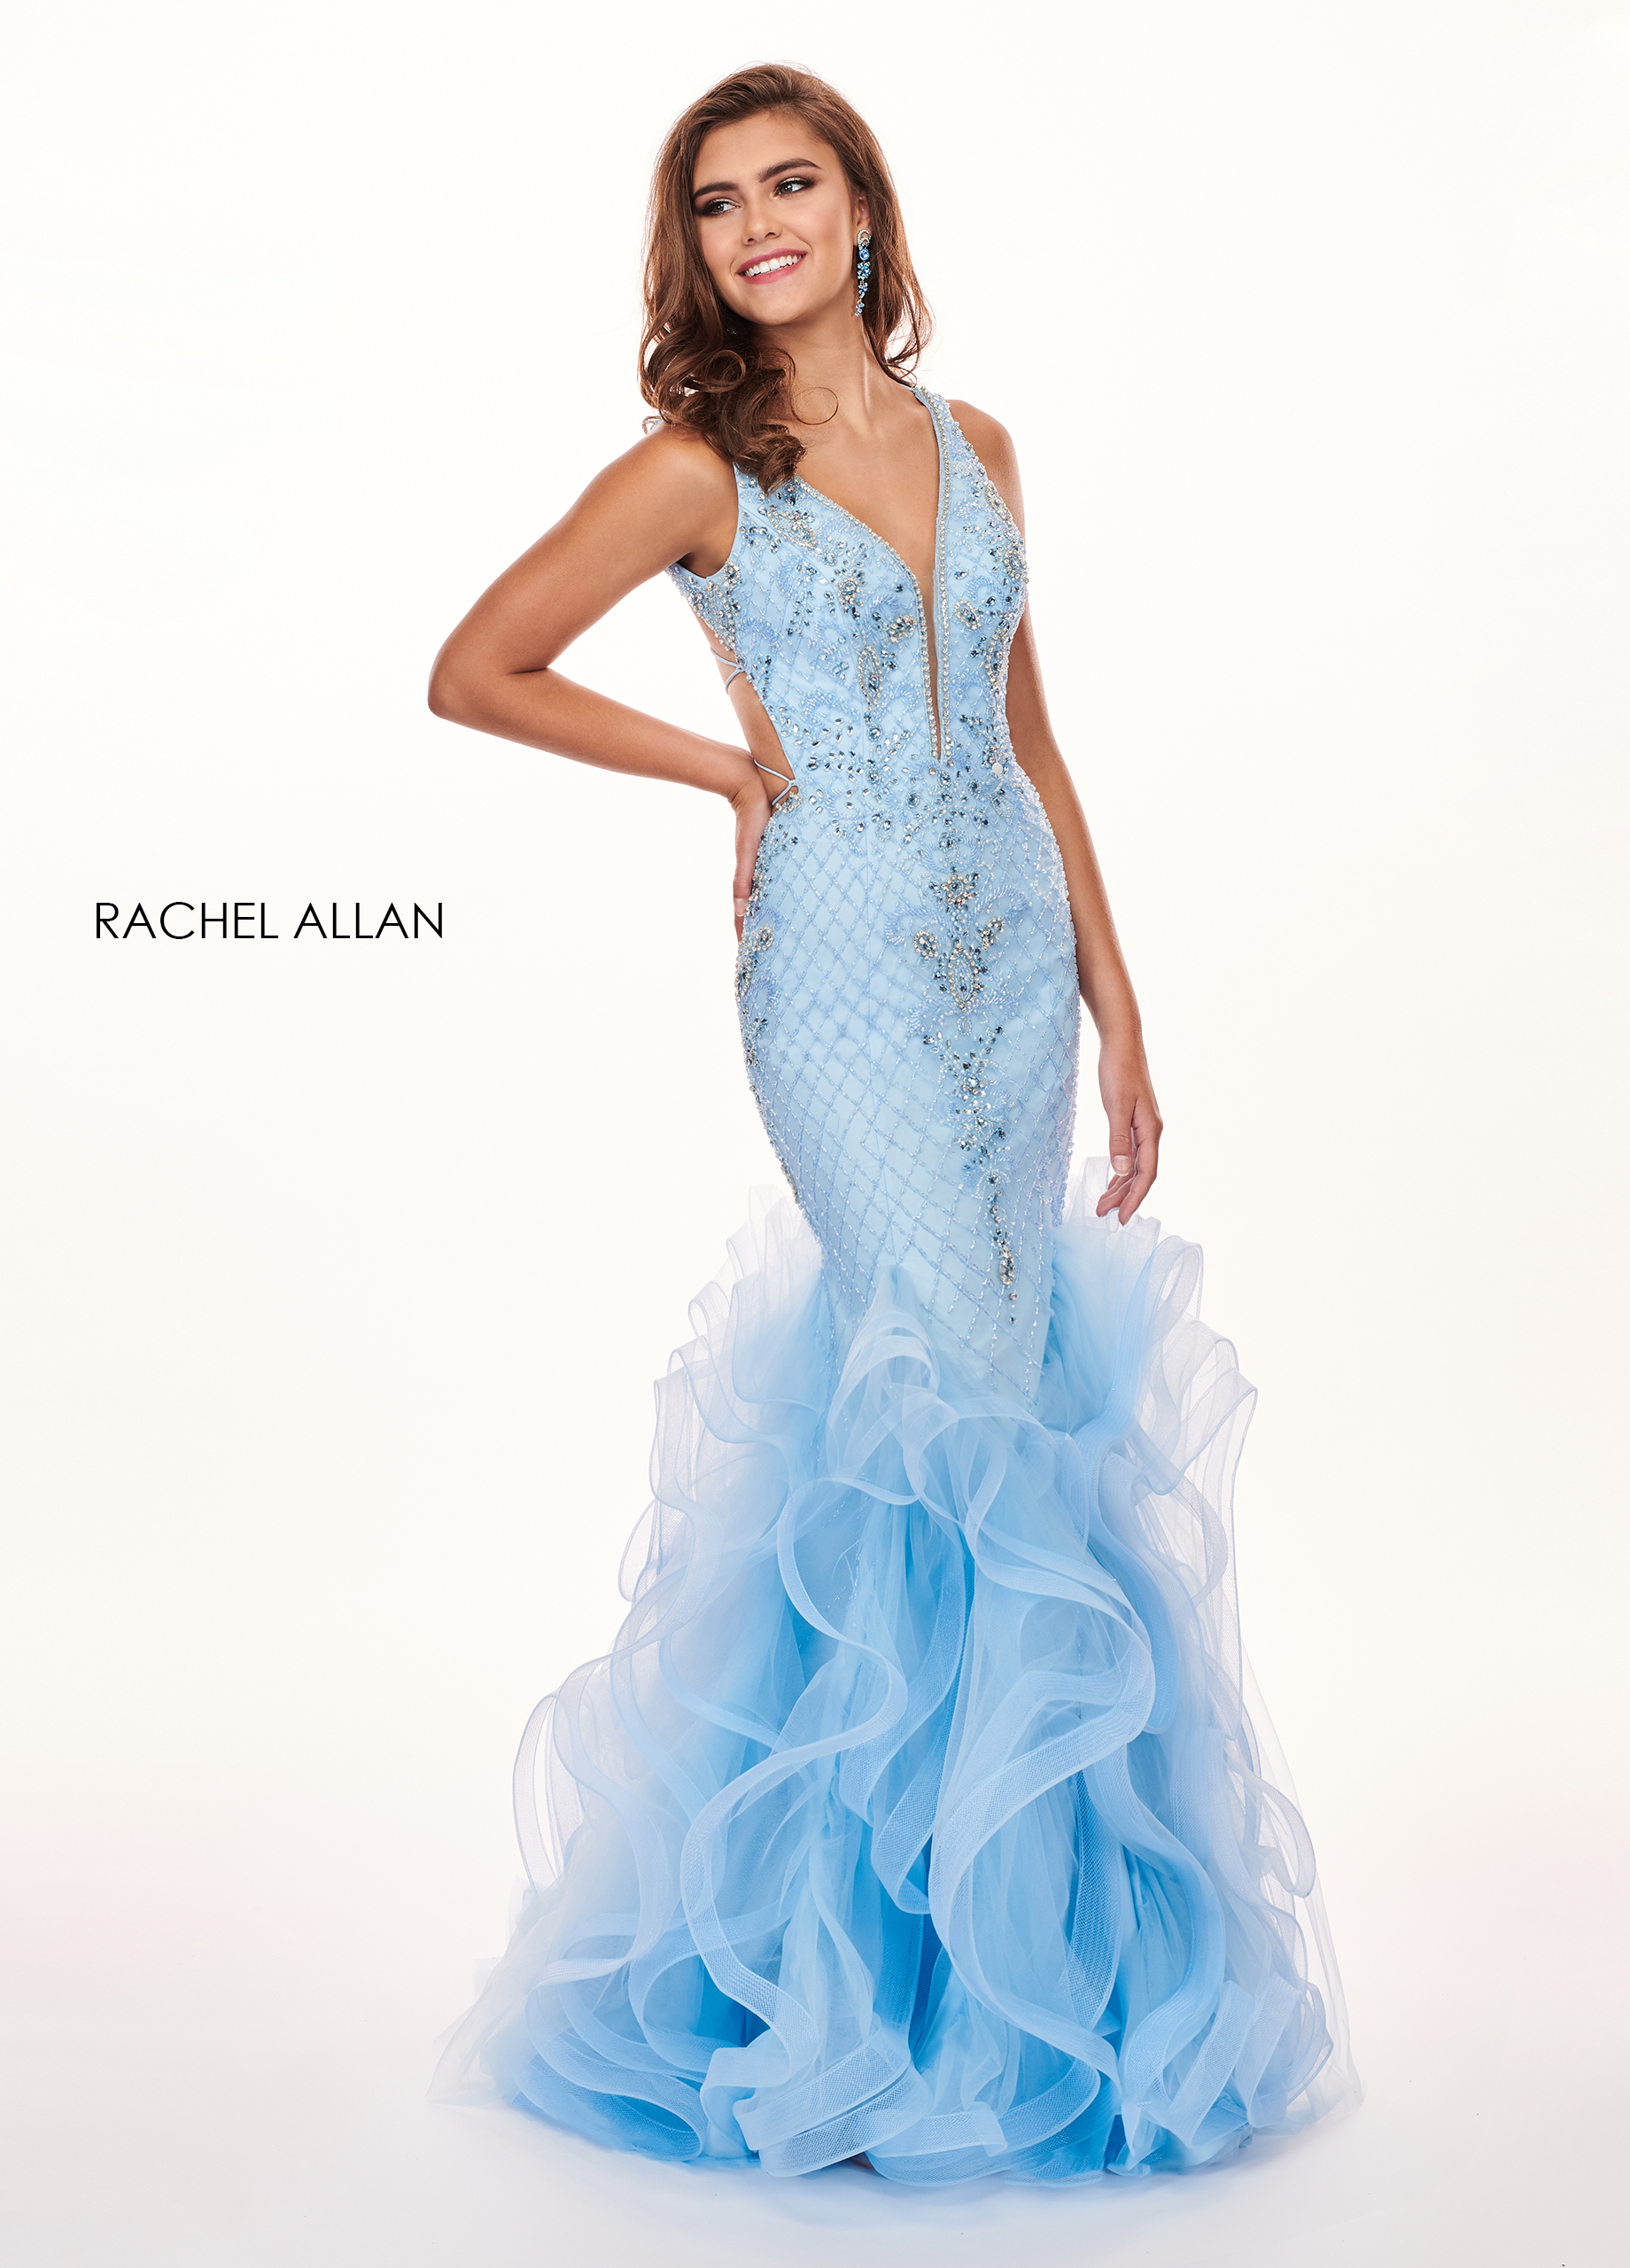 V-Neck Mermaid Prom Dresses in Blue Color